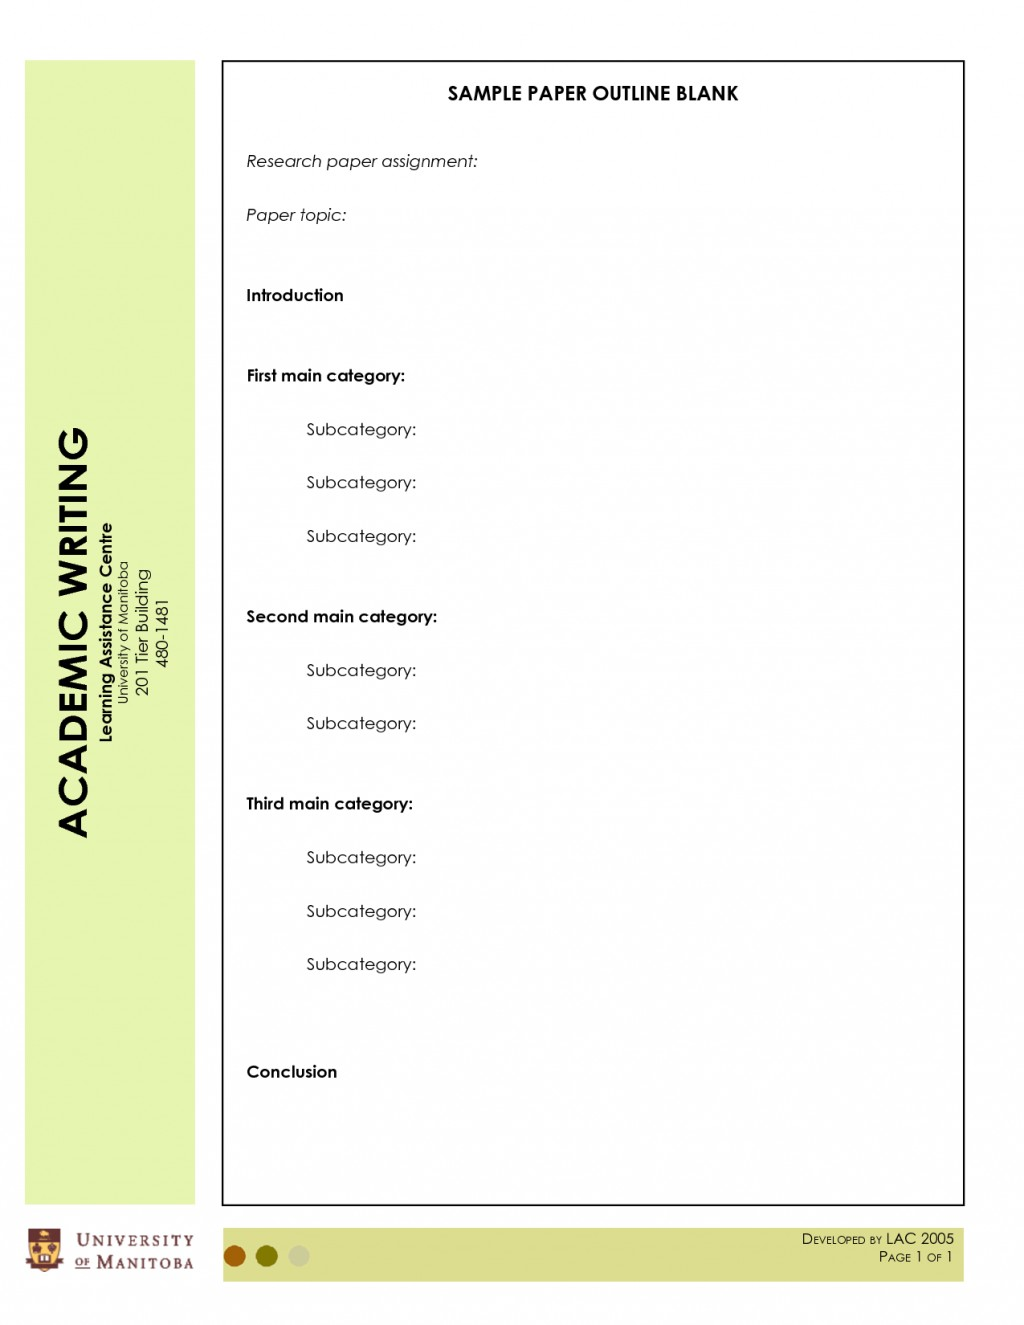 005 Blank Research Paper Outline Template Pdf Free For L Fascinating Large